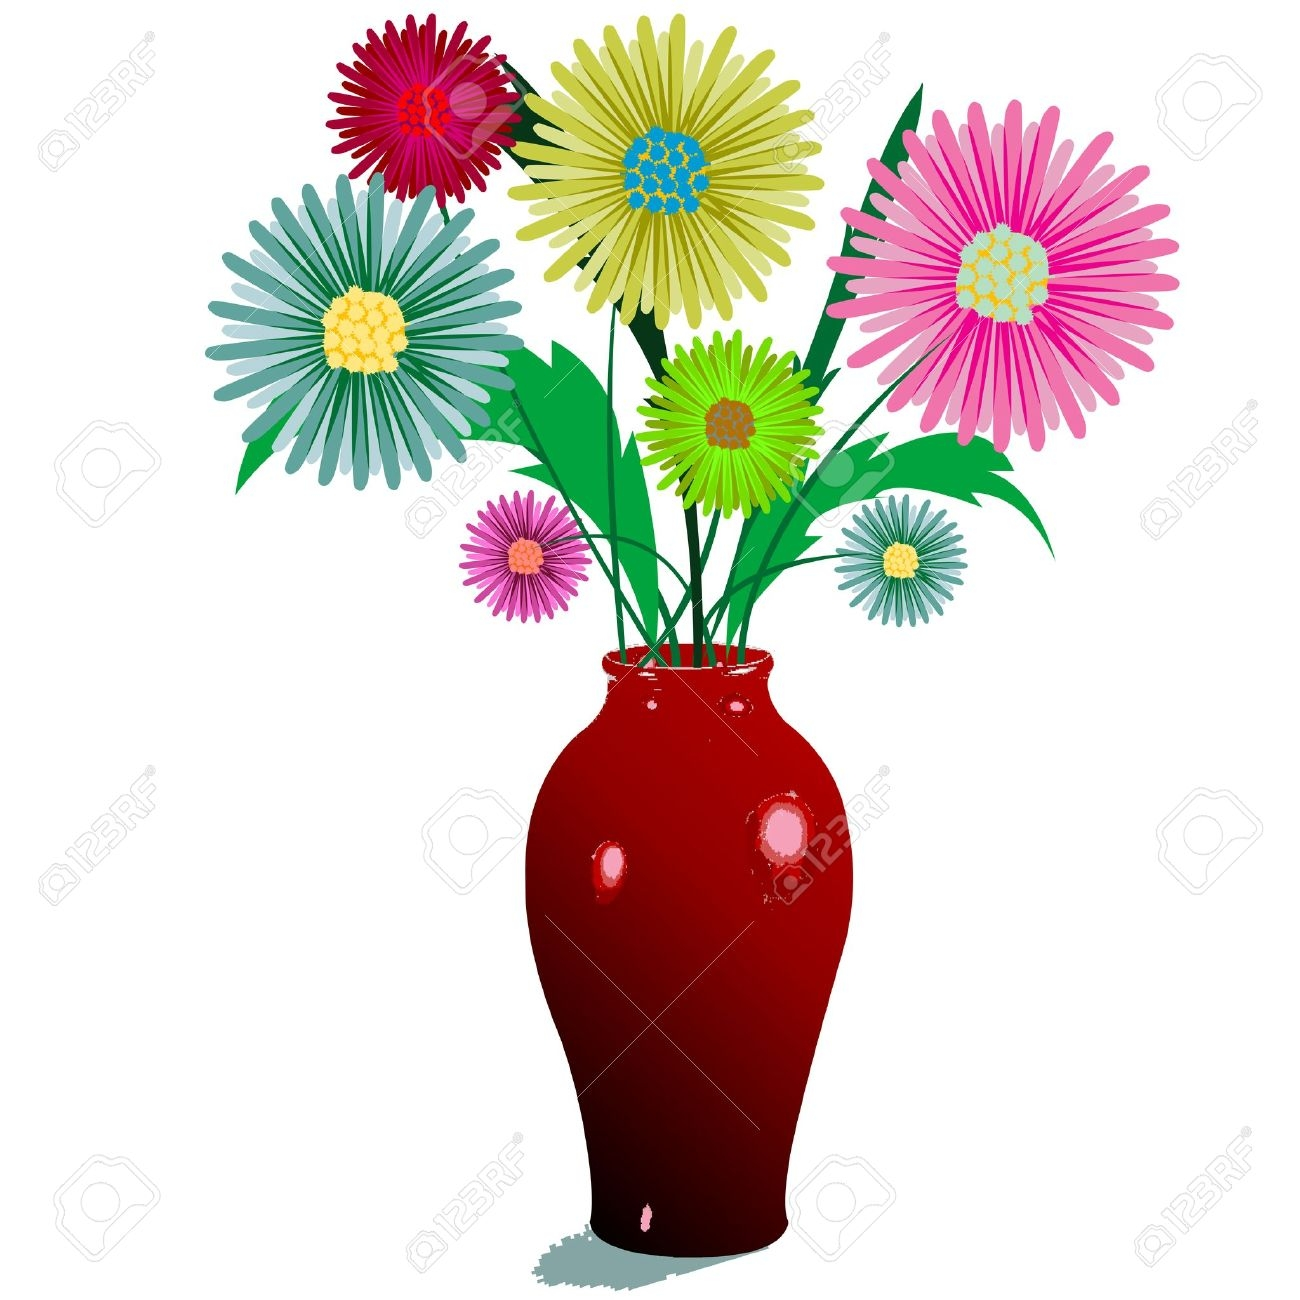 Vase clipart #4, Download drawings